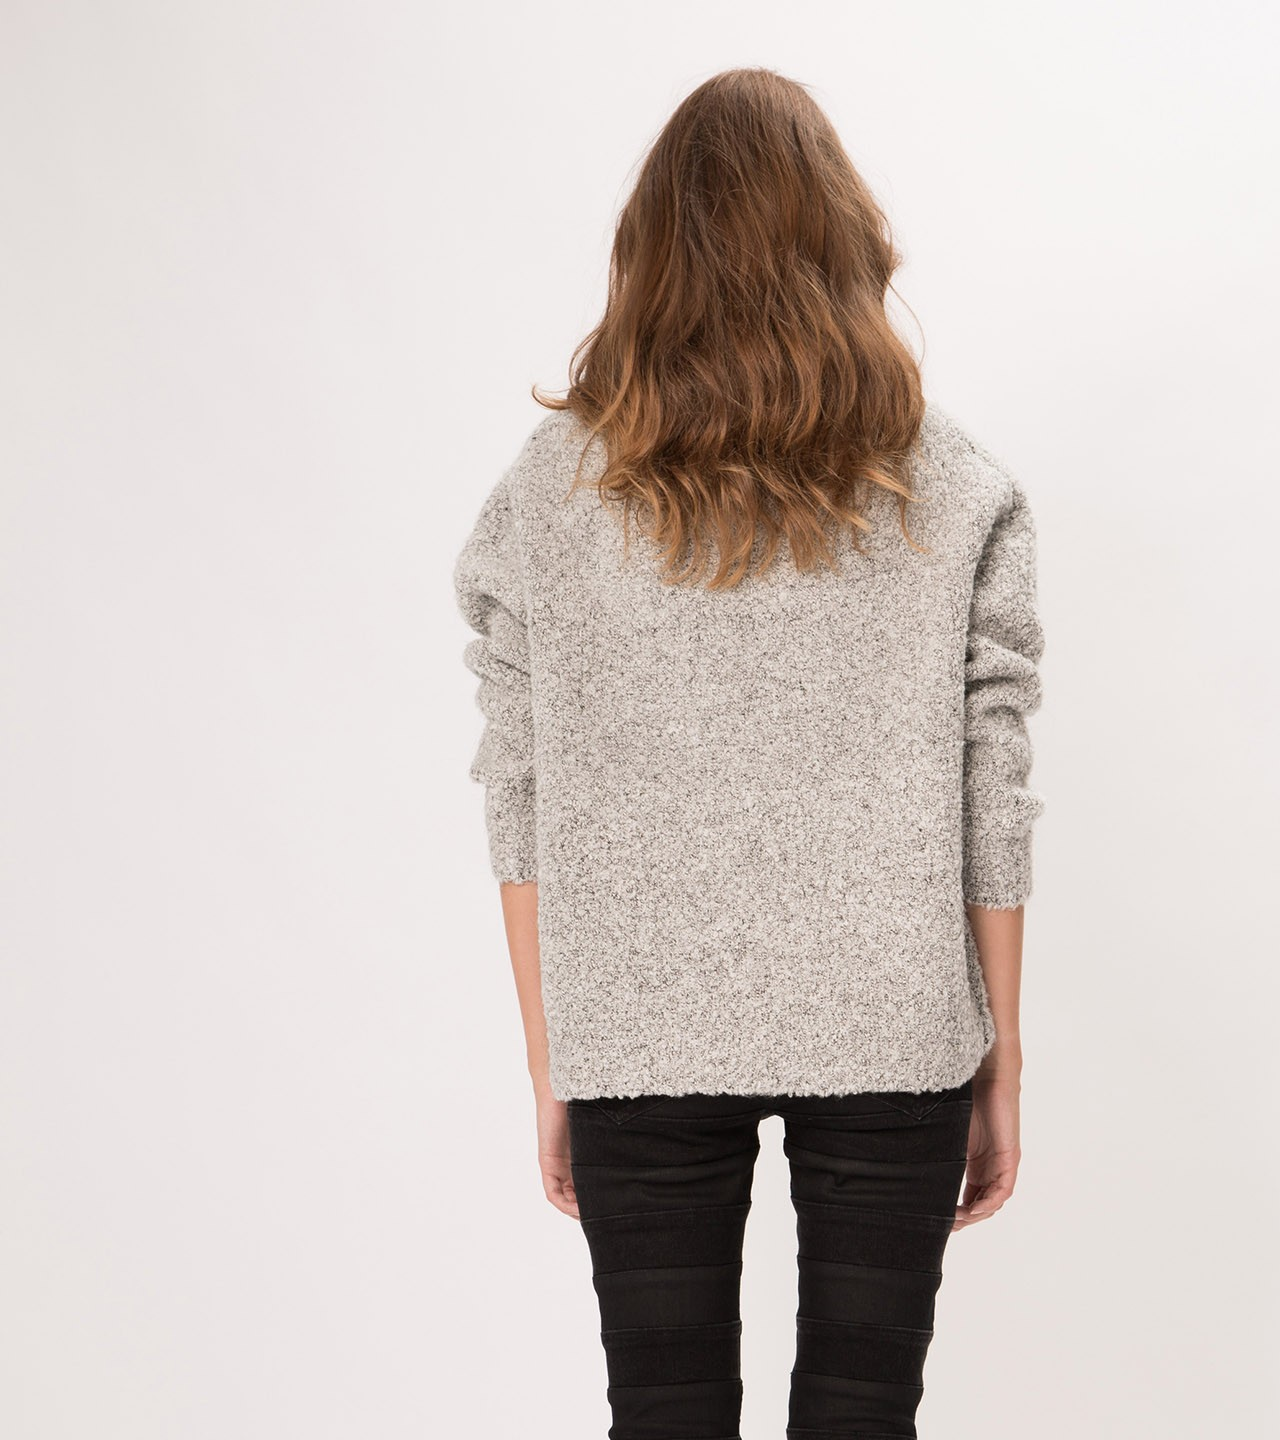 maje GLAIVE Oversize turtleneck angora sweater at Maje US